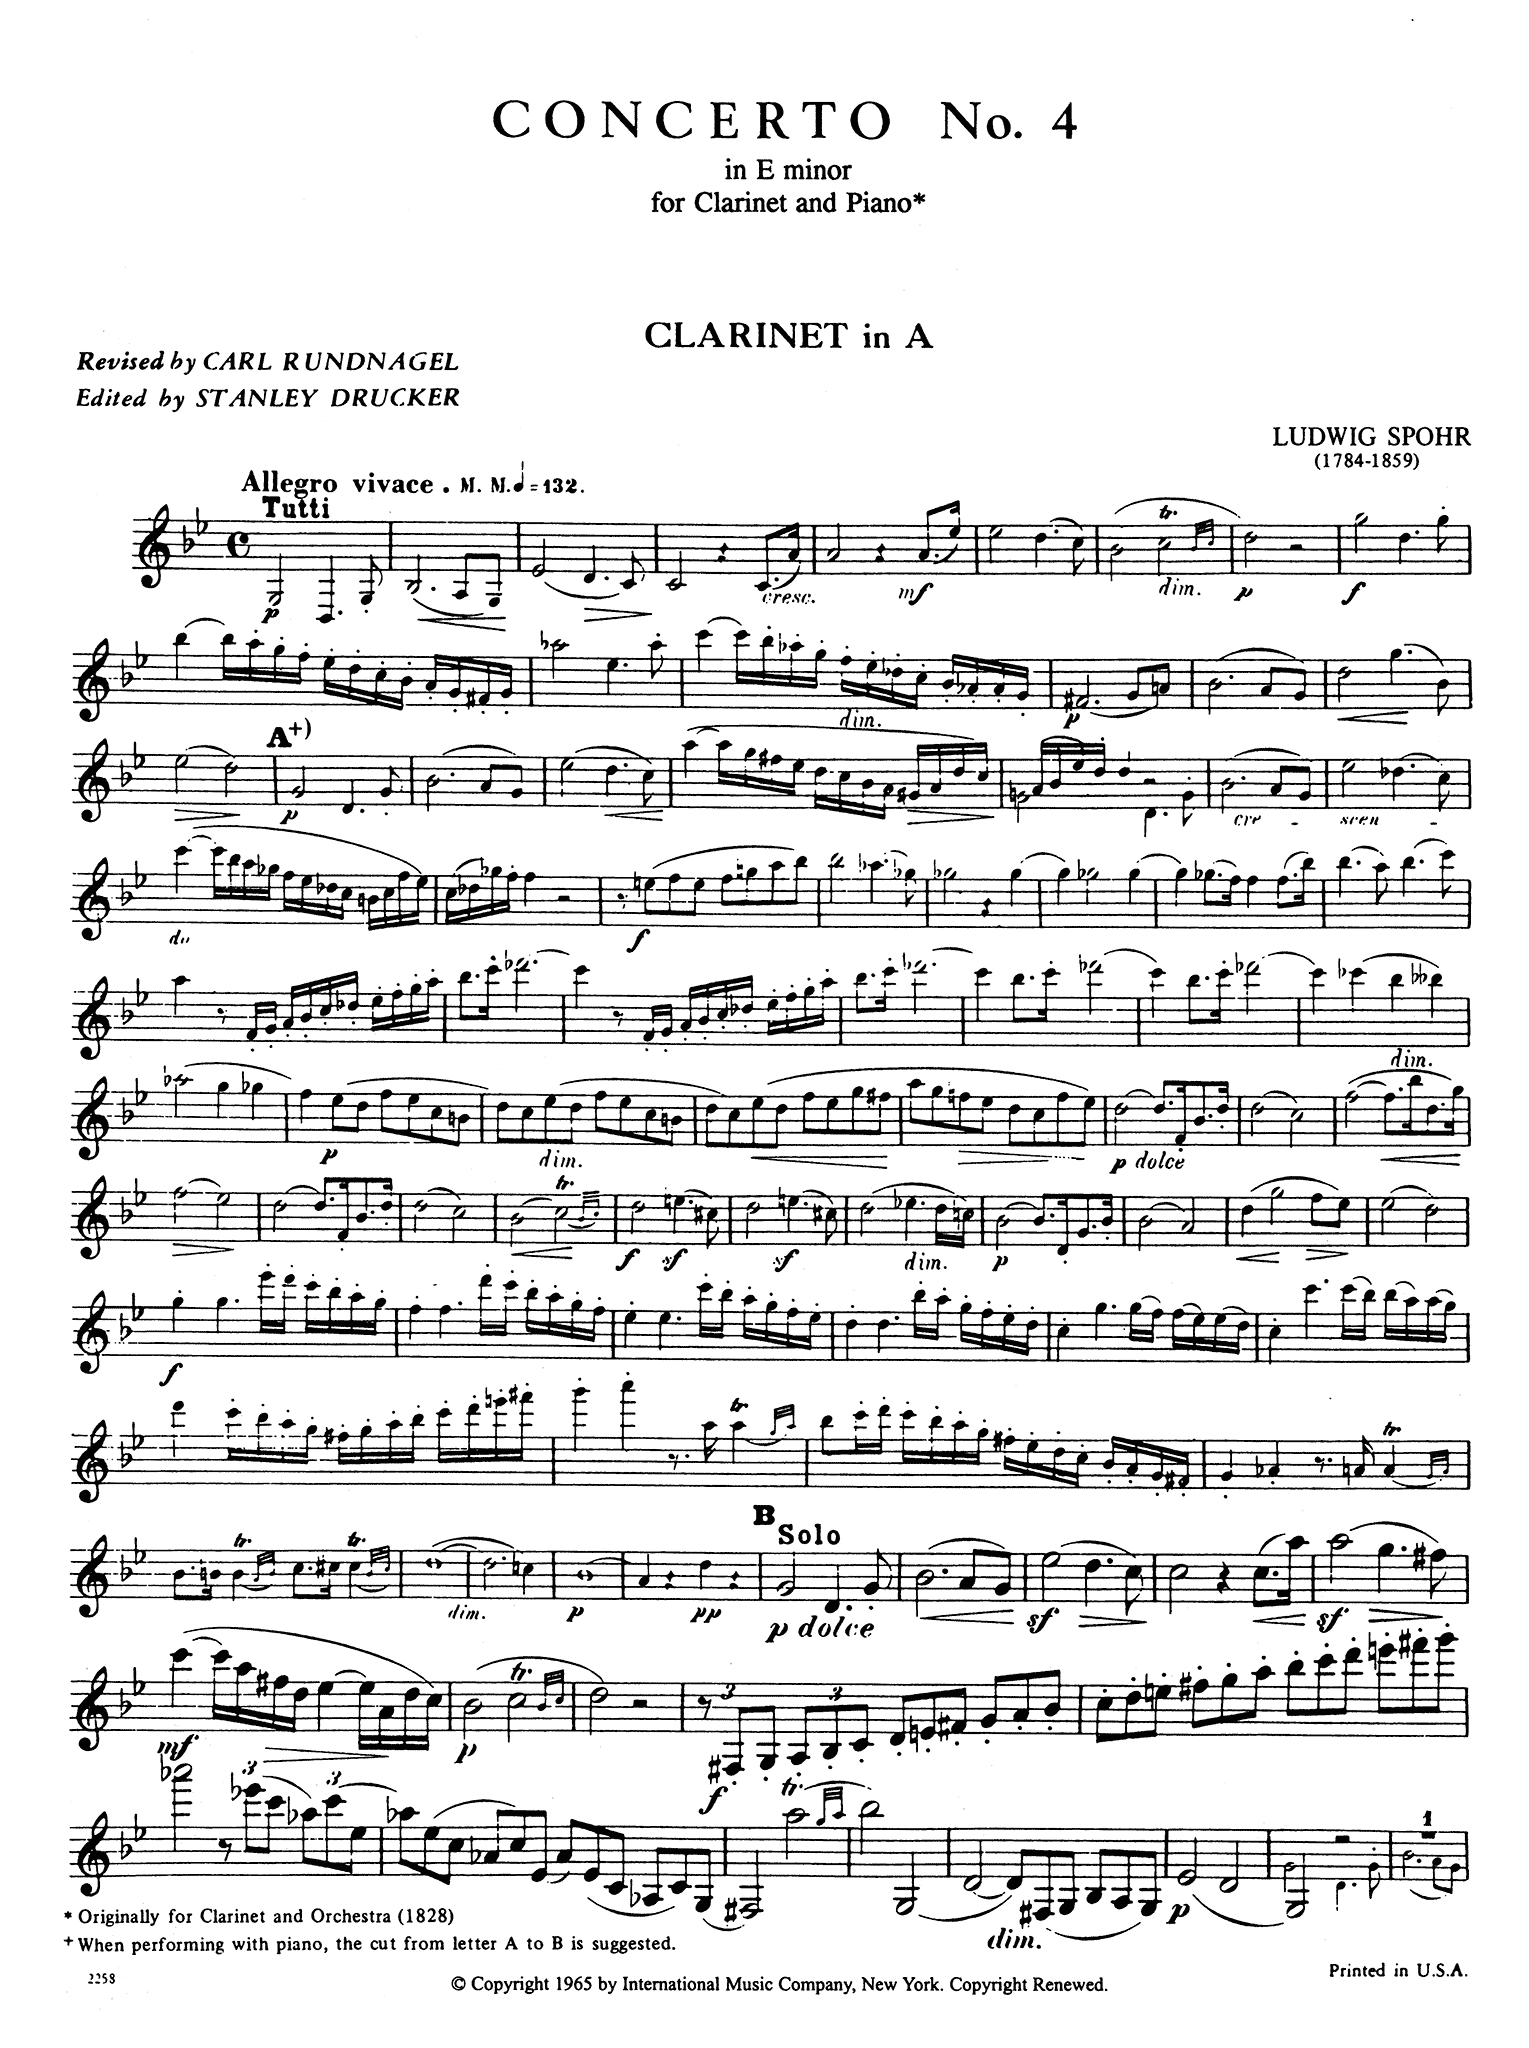 Clarinet Concerto No. 4 in E Minor, WoO 20 Clarinet part